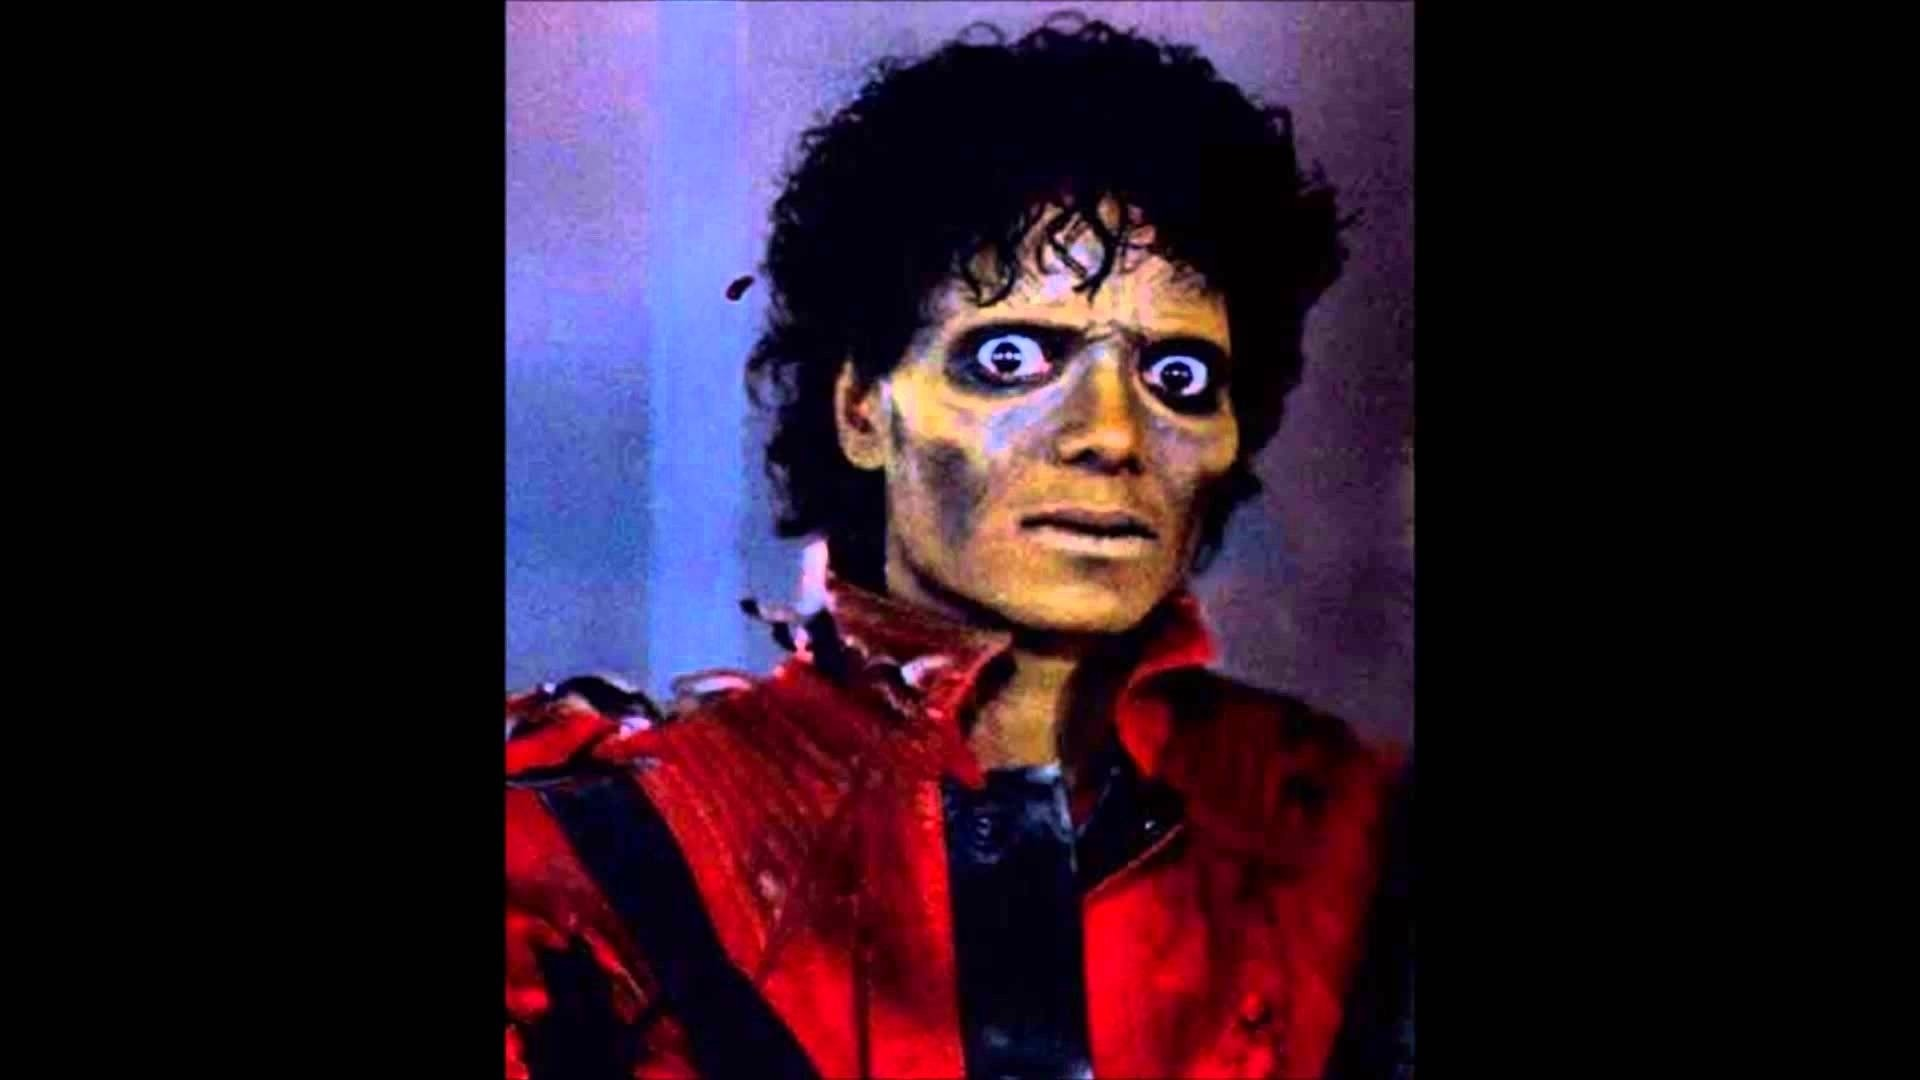 1920x1080 Title : michael jackson thriller – youtube. Dimension : 1920 x 1080. File  Type : JPG/JPEG